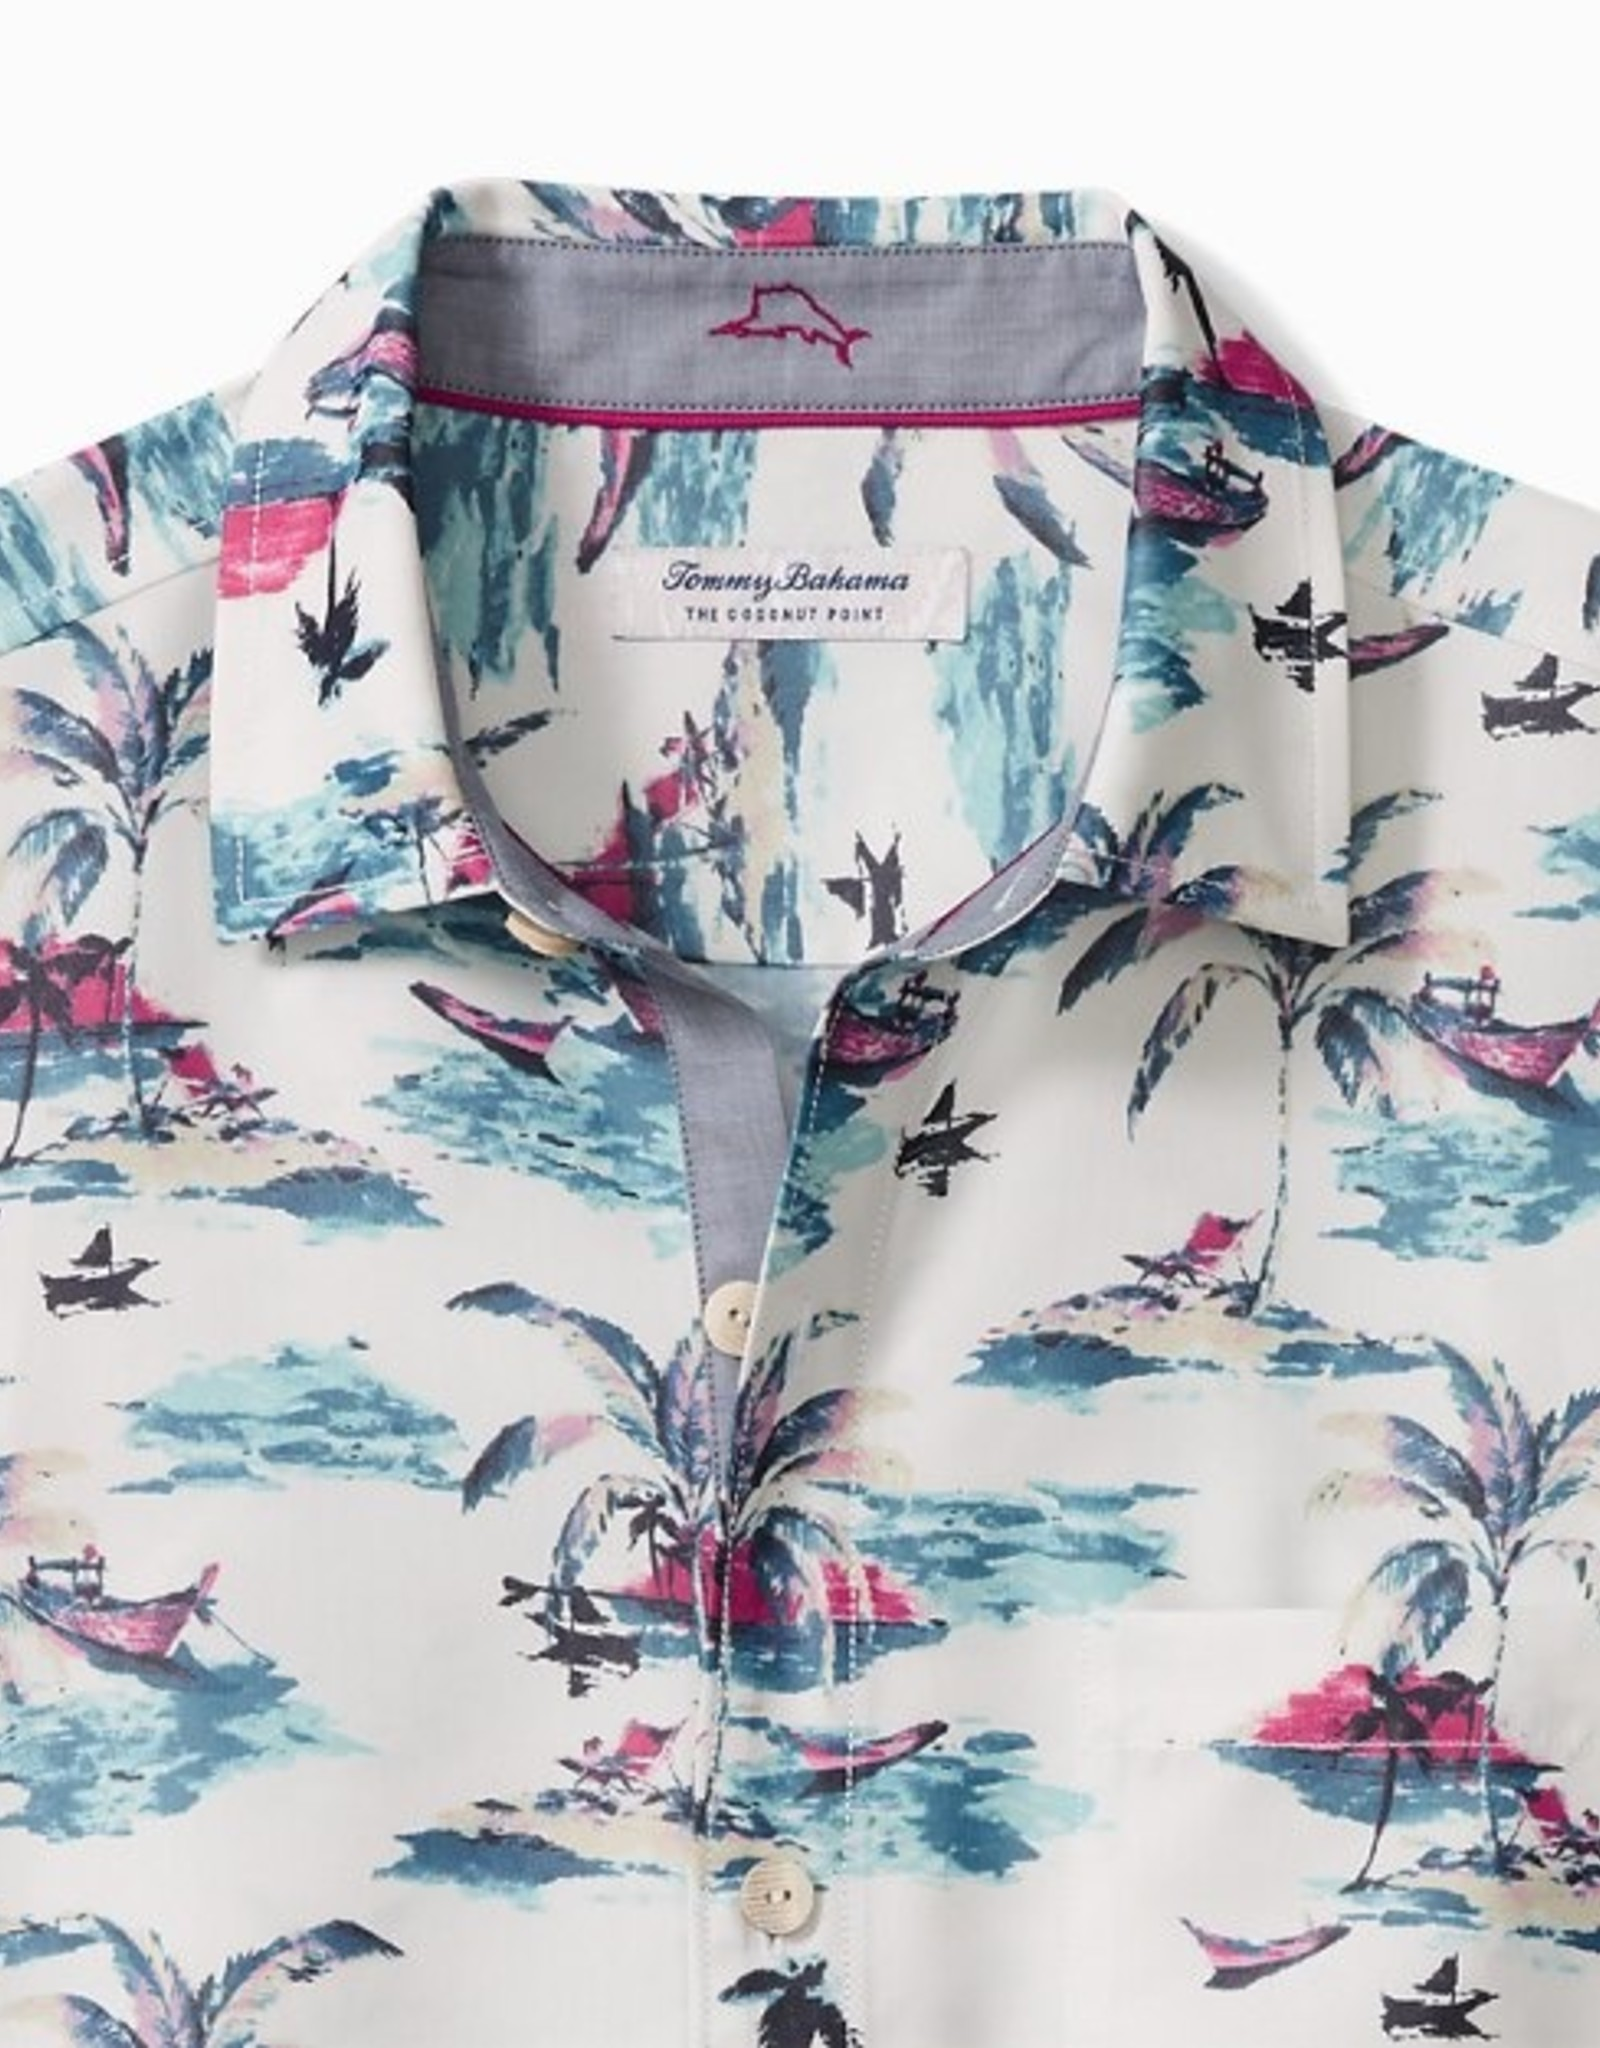 Tommy Bahama Coconut Point Sunset Camp Shirt